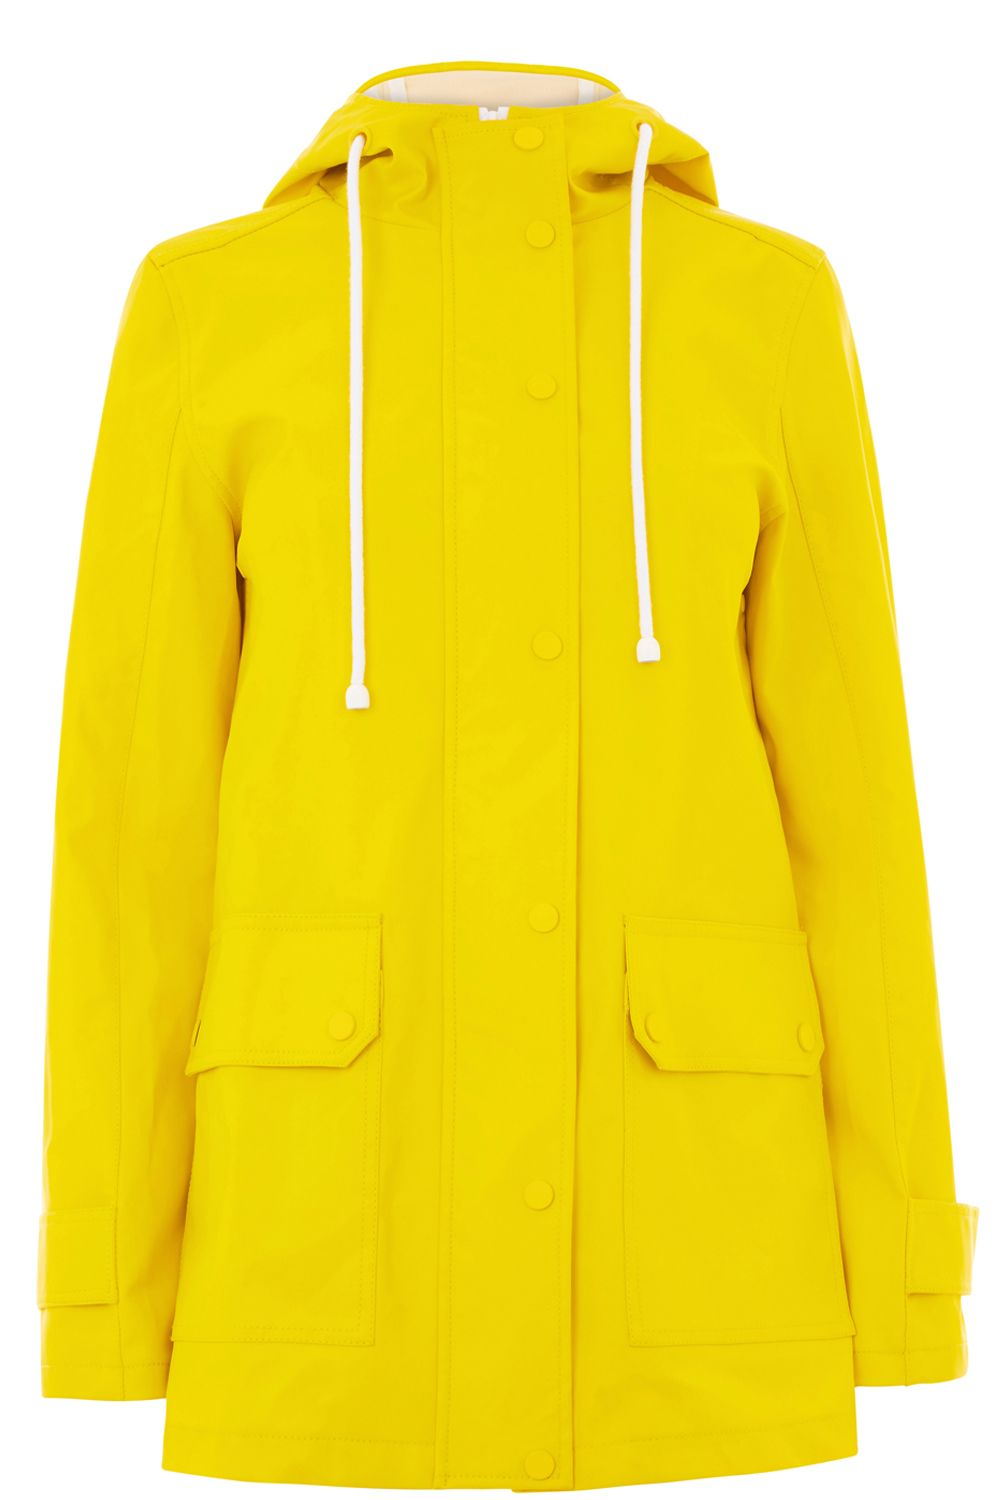 Warehouse Contrast Trim Anorak Yellow